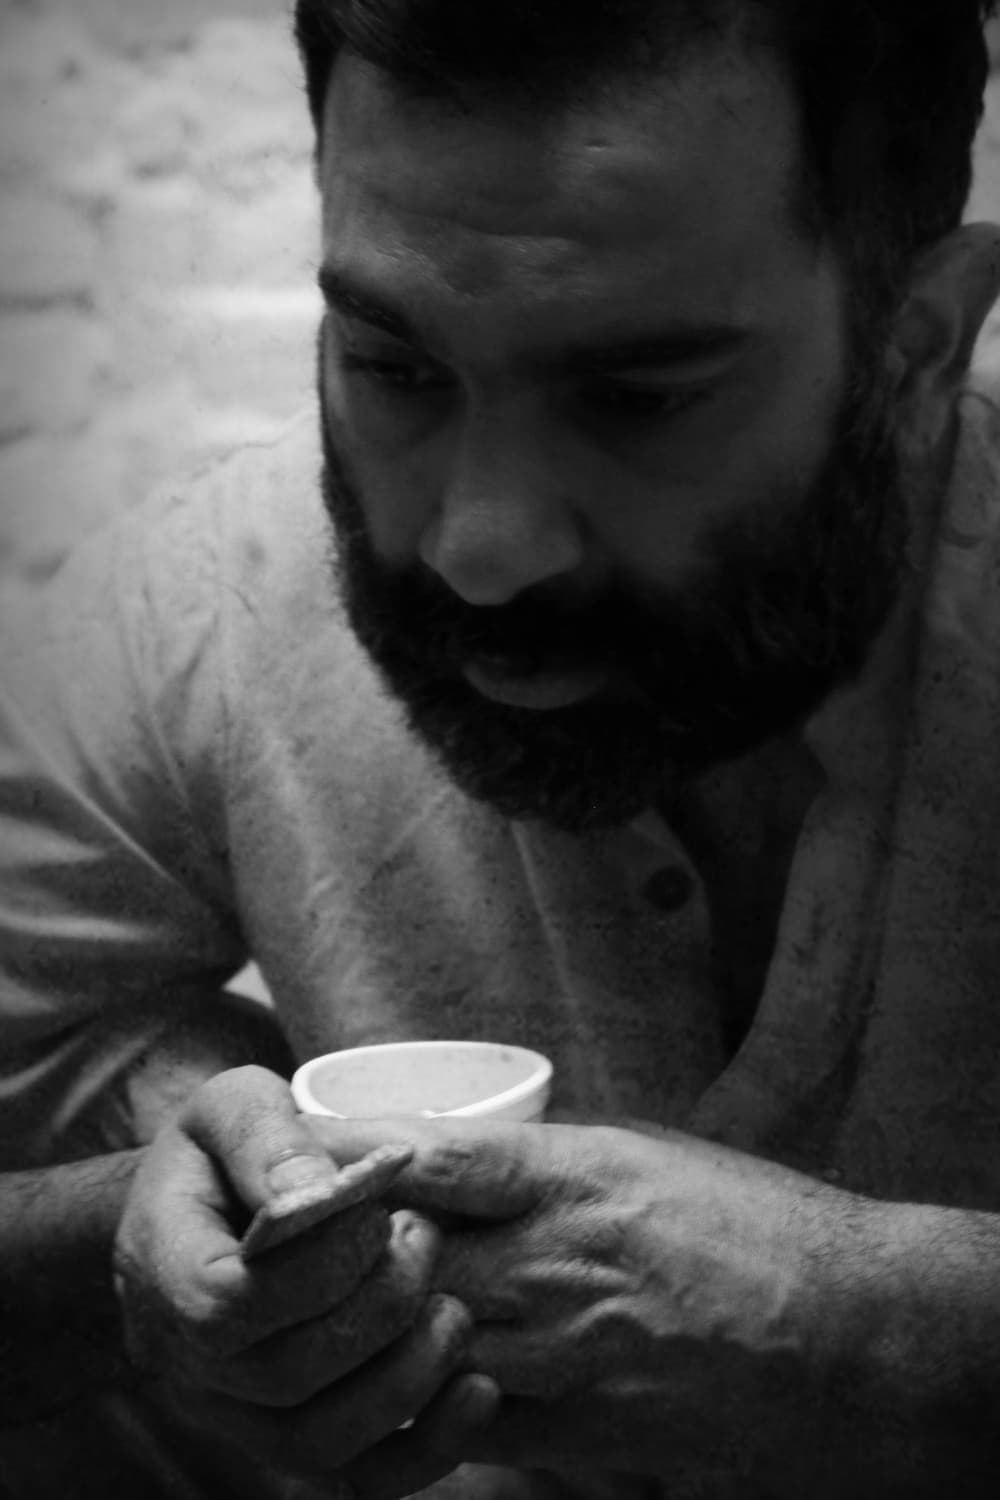 Prisoner Z at his lunch of tea and biscuits.—JPP